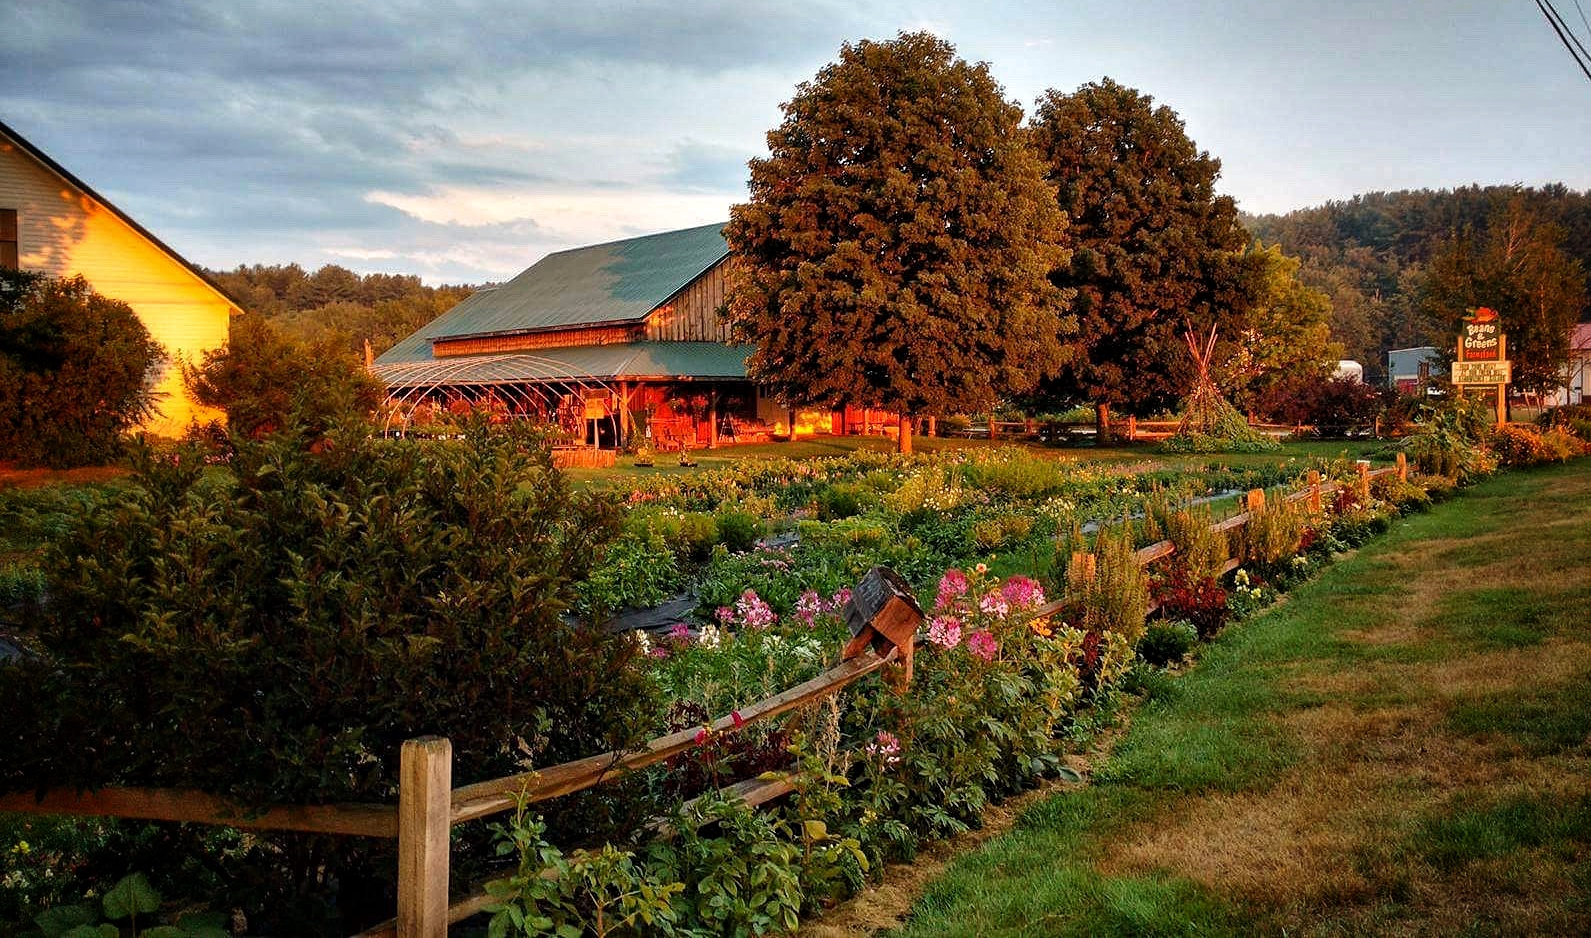 Beans & Greens Farm - Farmstand at Sunse